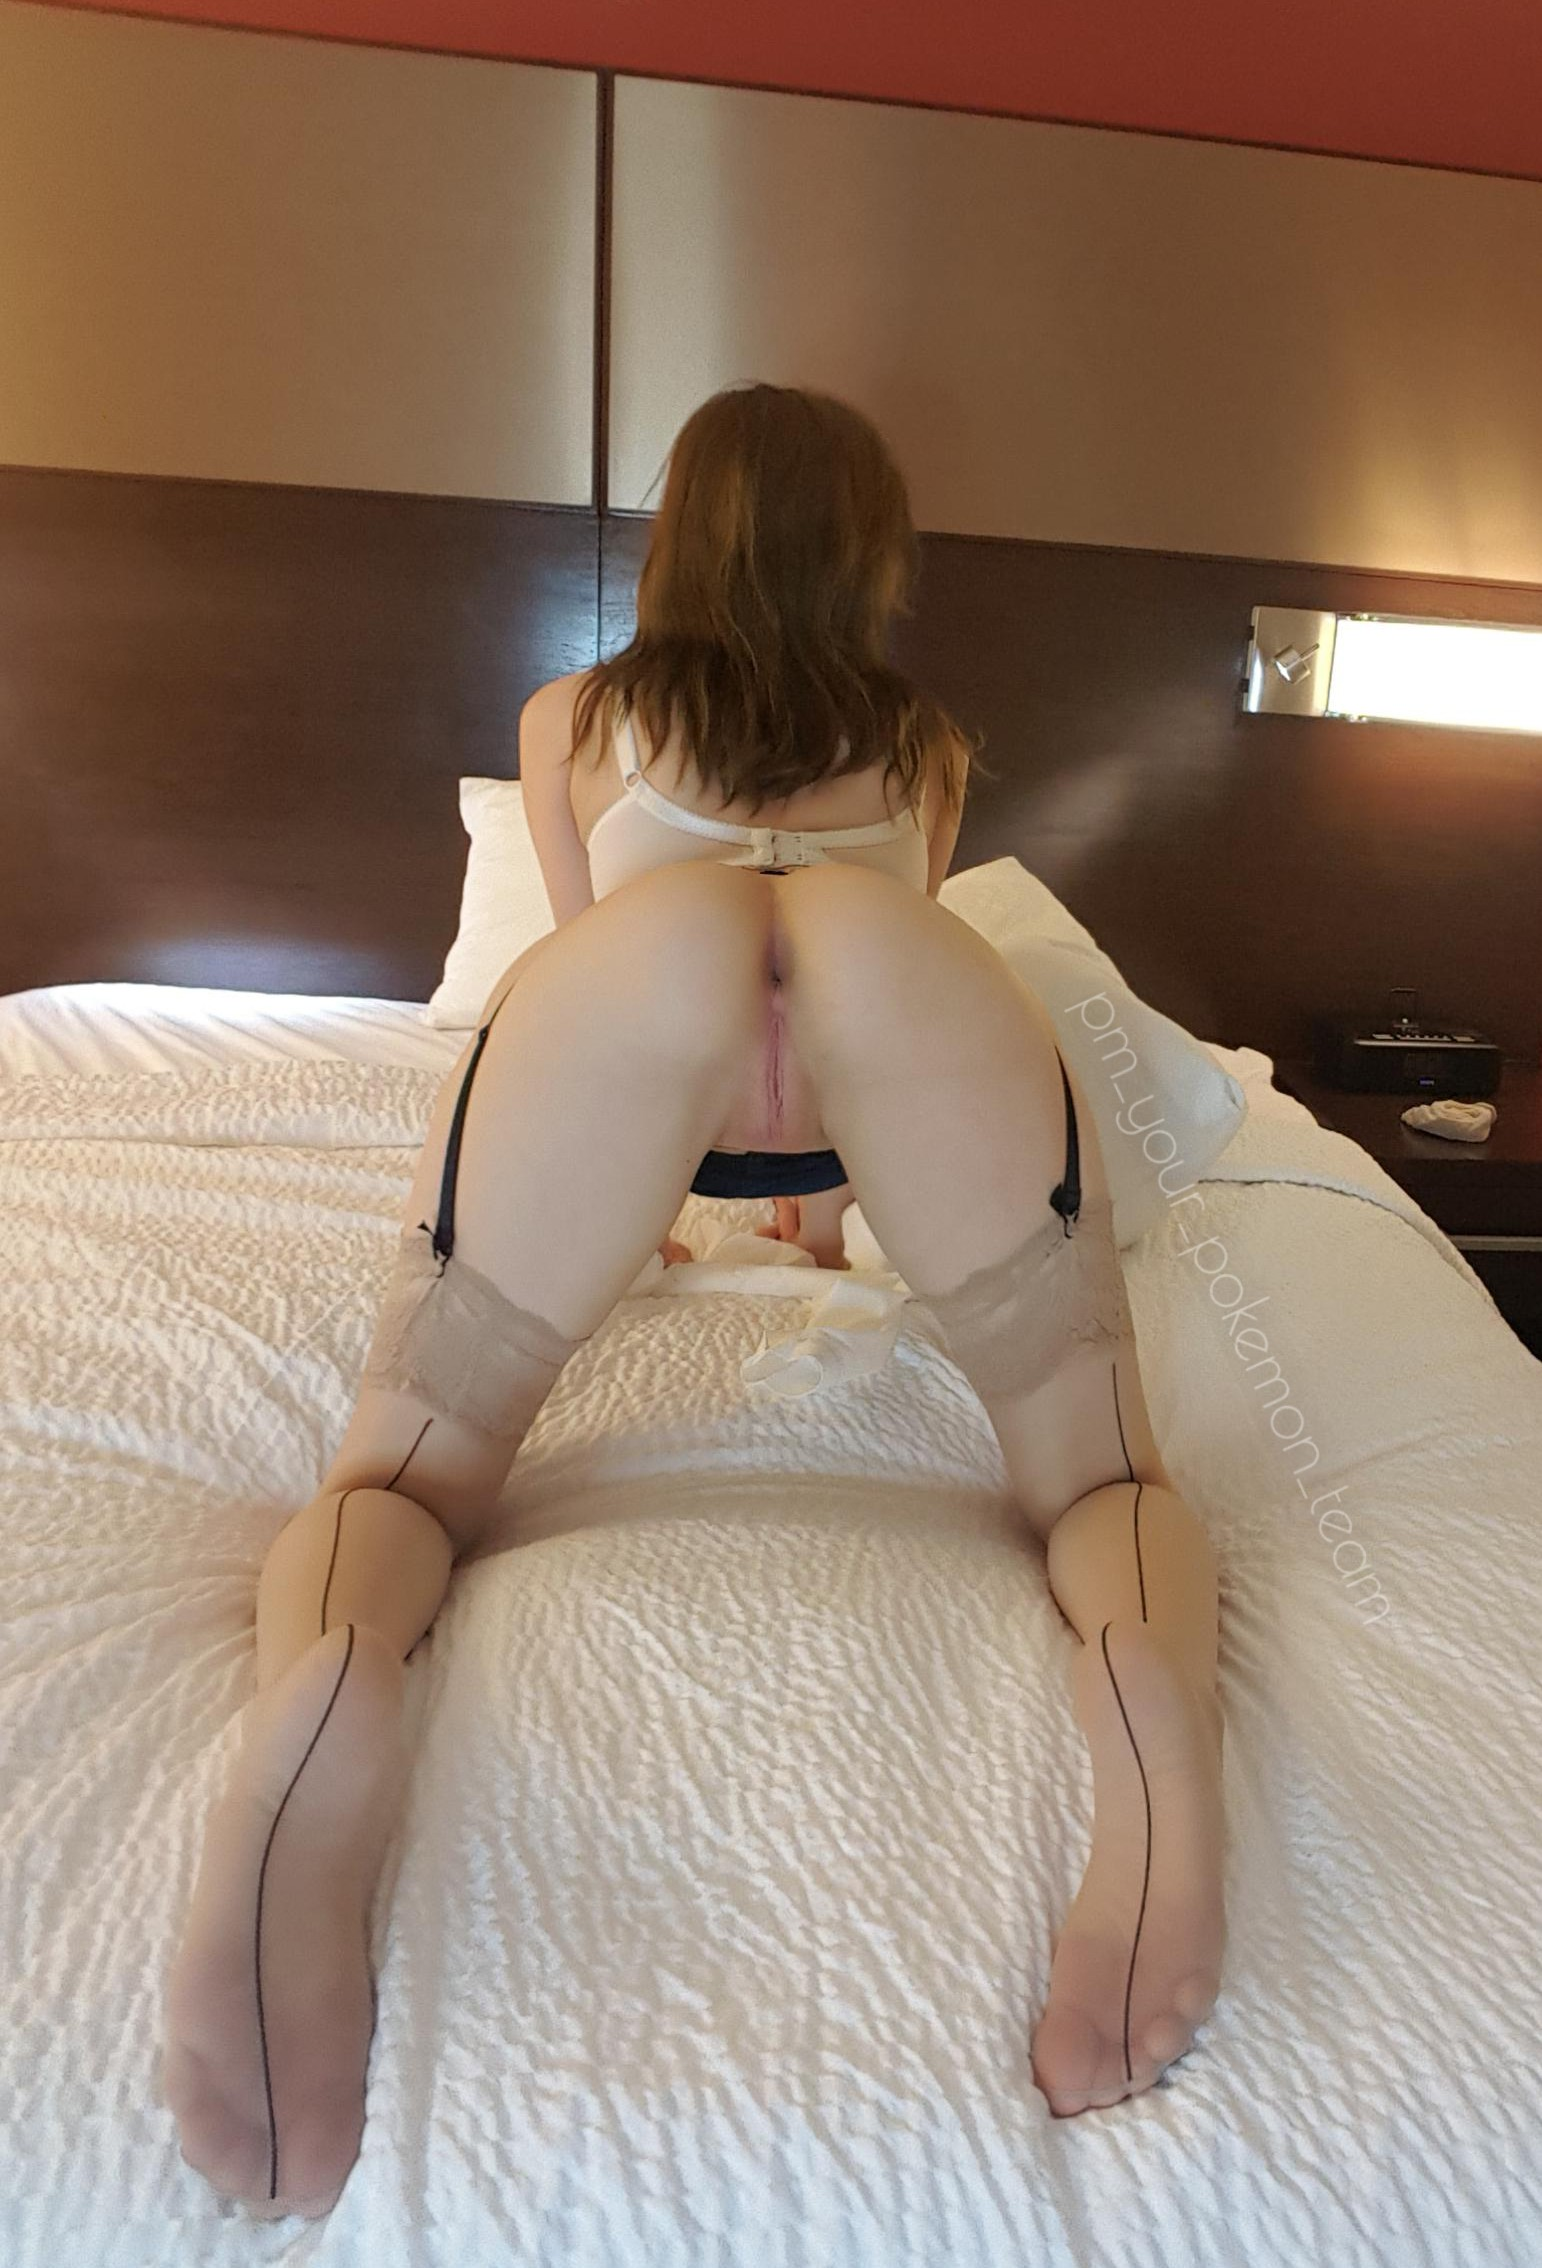 lesbian strapon fucked against wall free sex videos